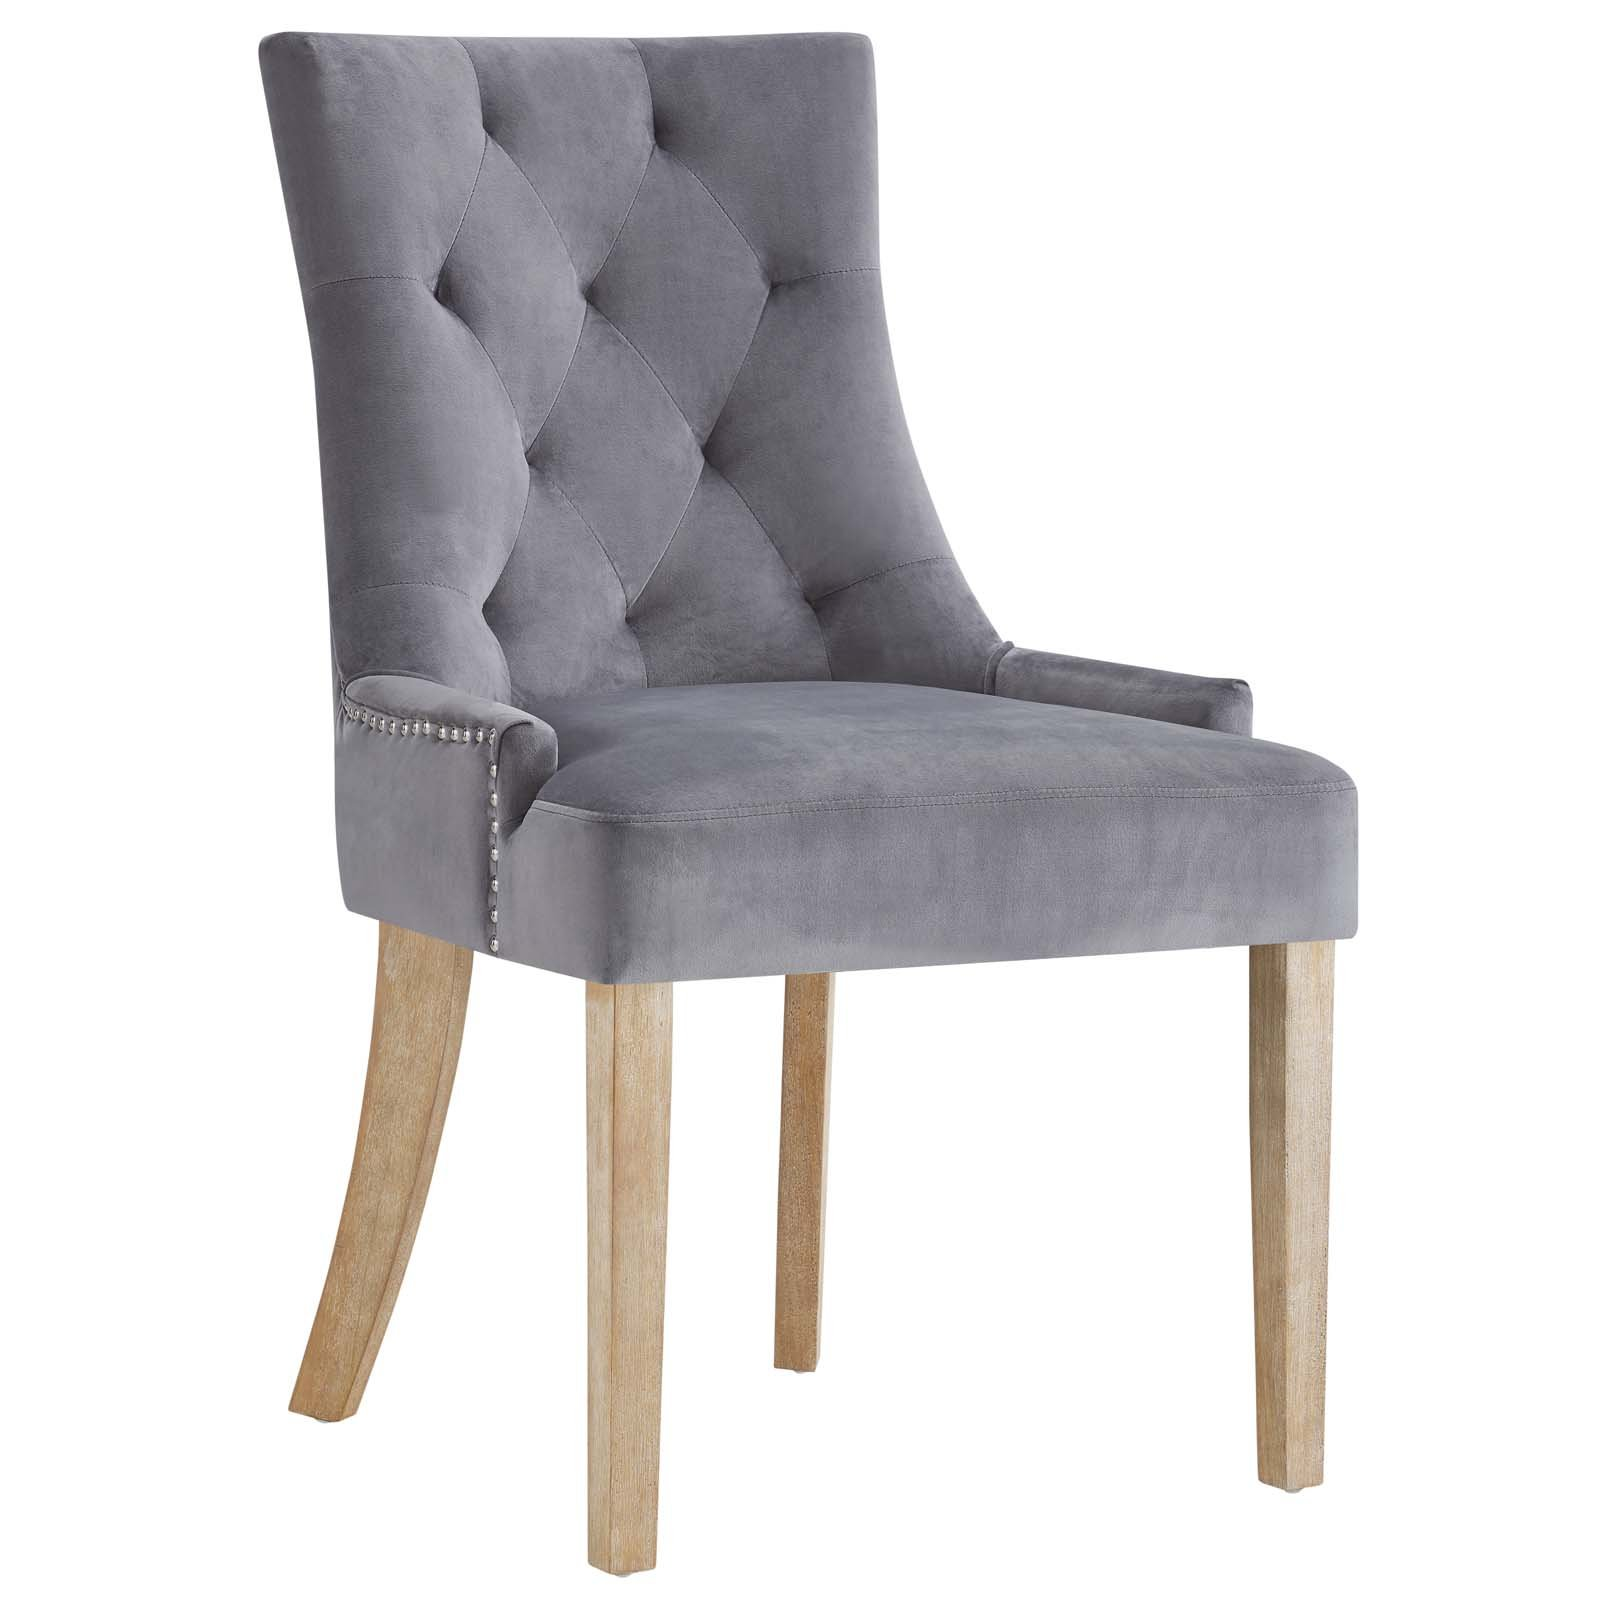 Modway Pose Tufted Performance Velvet Upholstered Dining Chair with Nailhead Trim in Gray